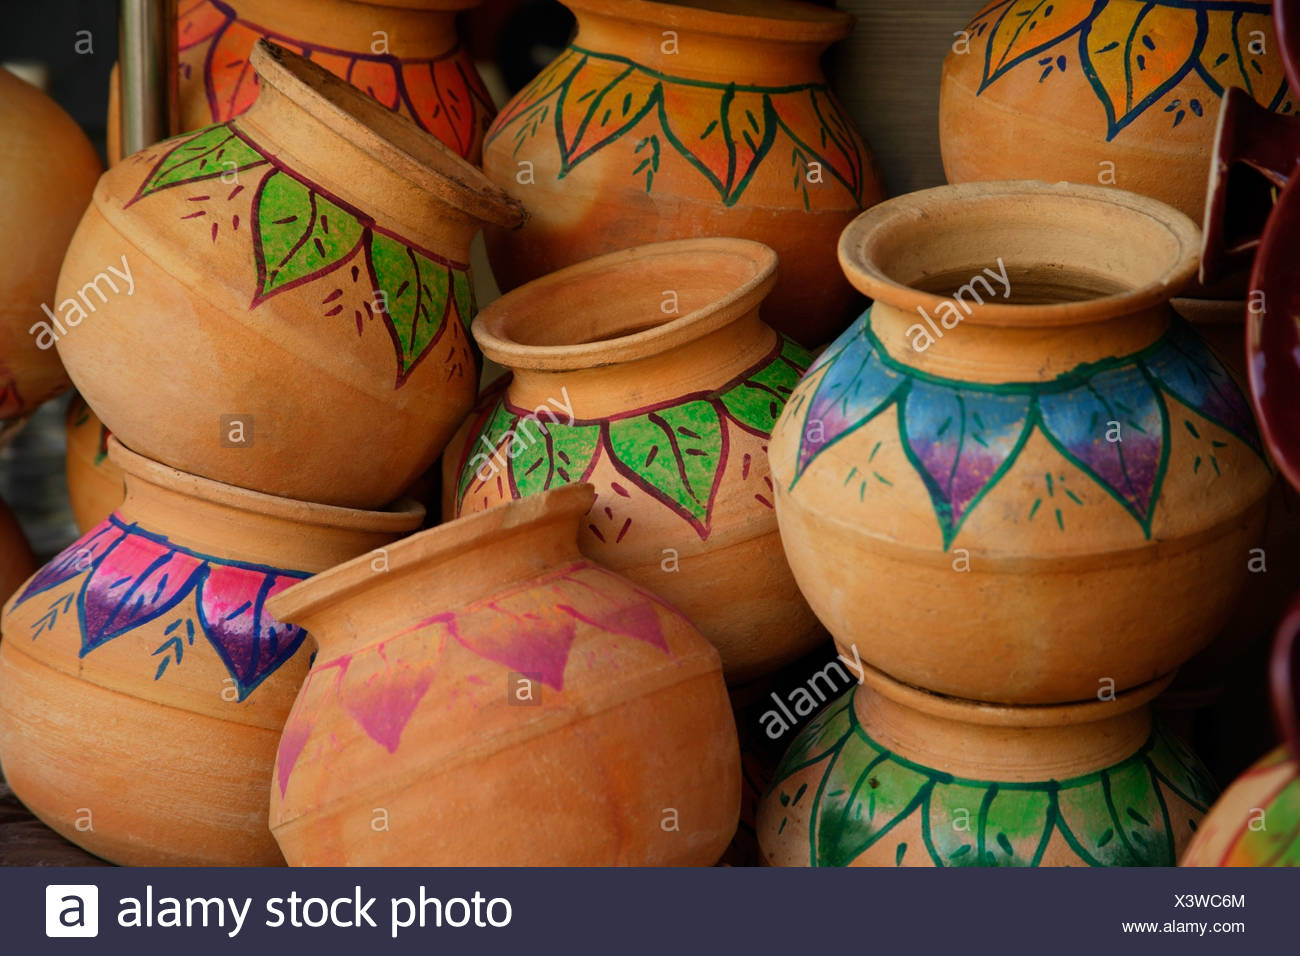 clay pot indian art Hand painted Indian clay pots Stock Photo - Alamy